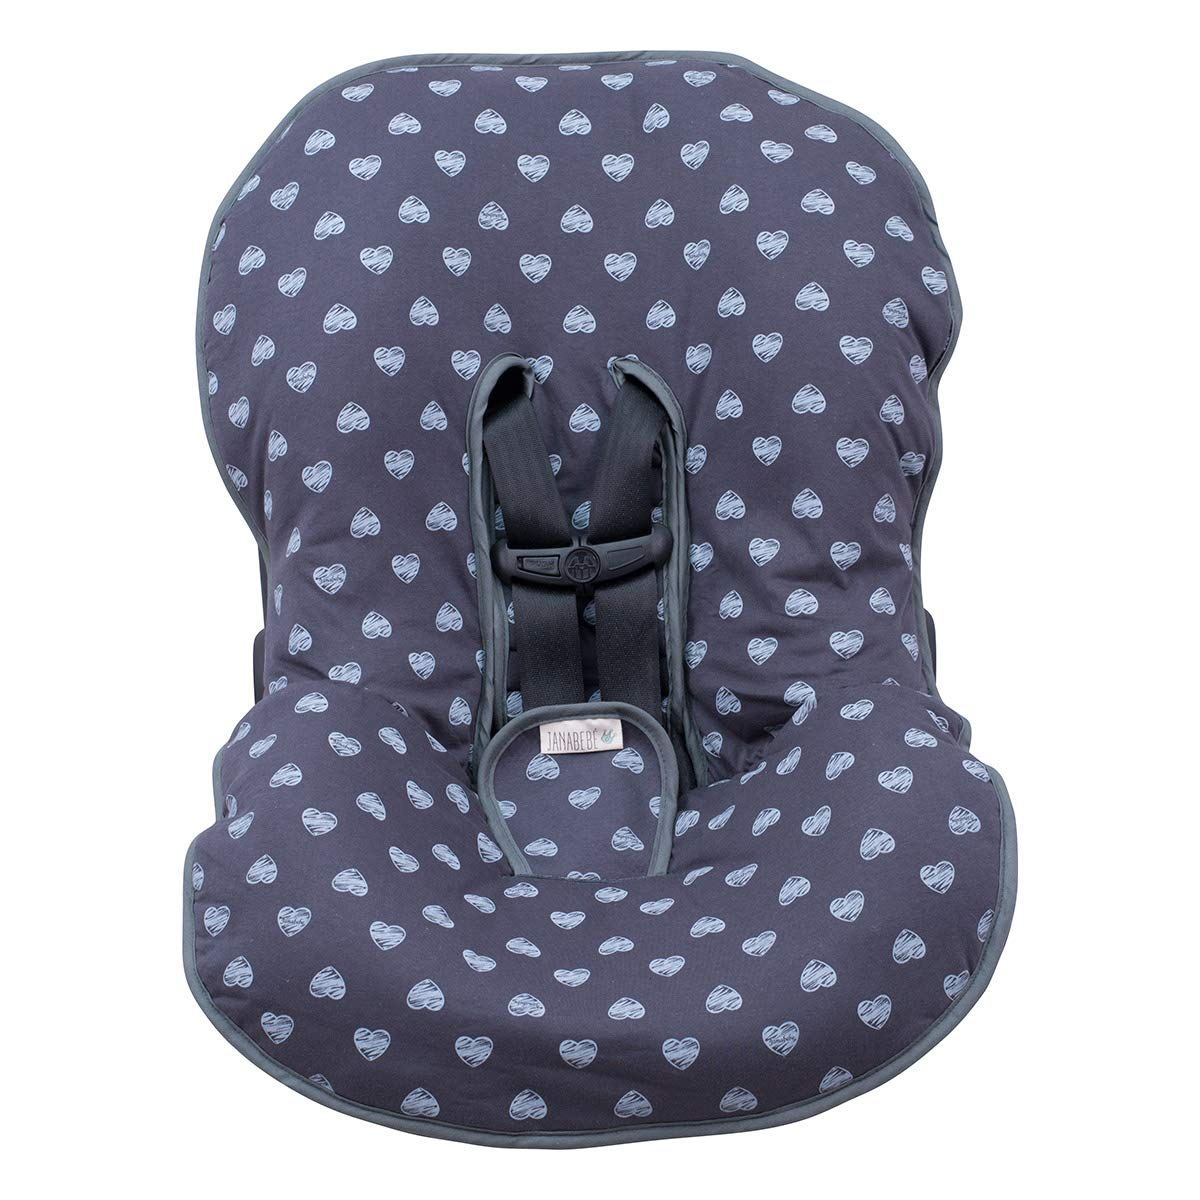 JANABEBÉ Universal Padded Cover Liner for Baby Carriers and CAR SEAT (Maxi COSI MICO, CHICCO, BRITAX, ETC) (Blue Heart) by JANABEBE